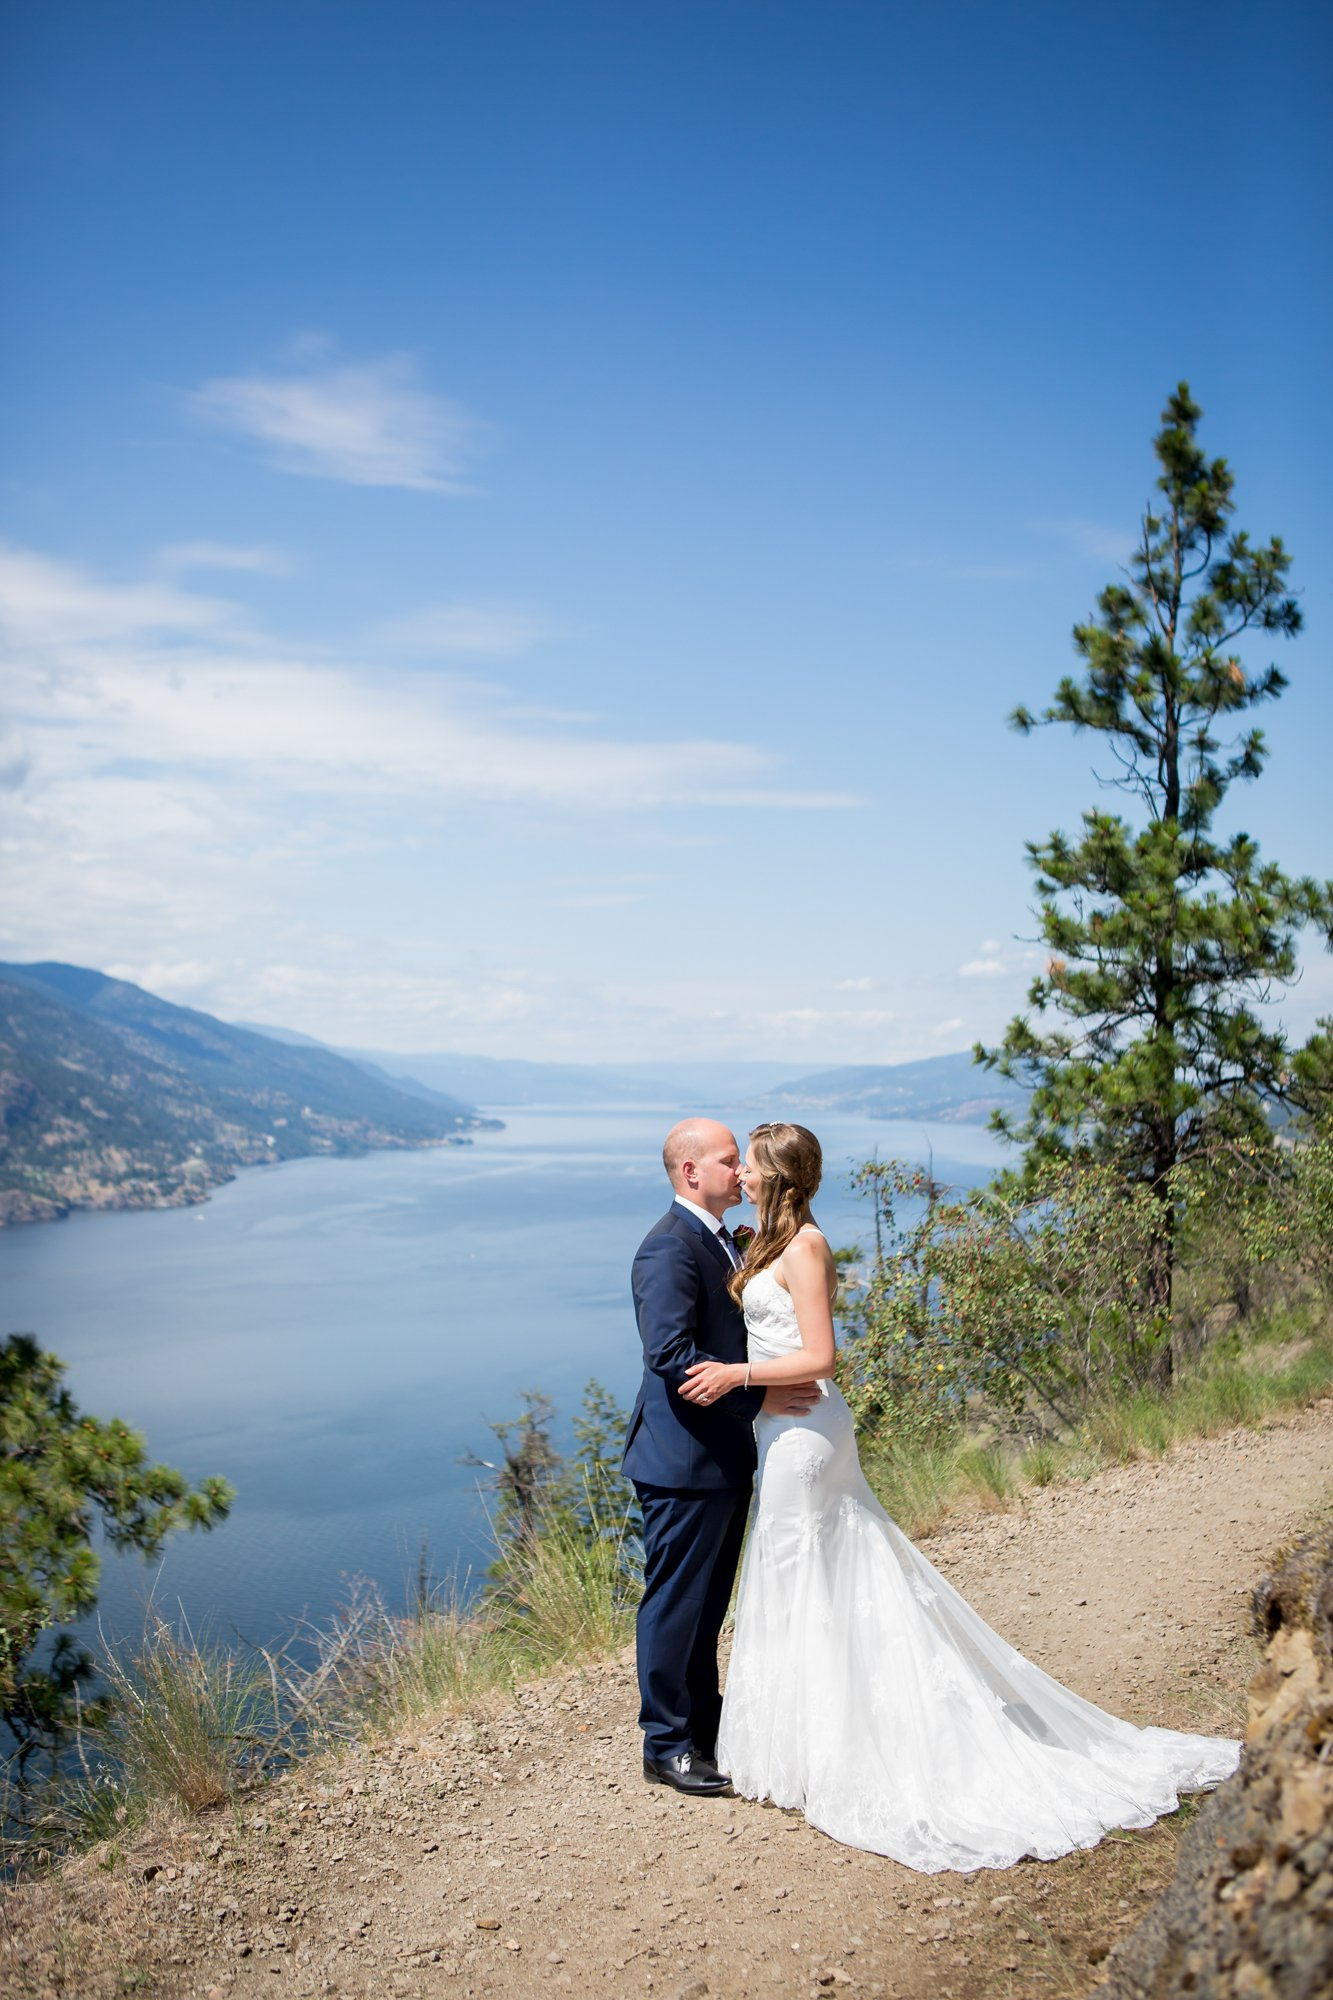 A couple kissing at a viewpoint on their wedding day